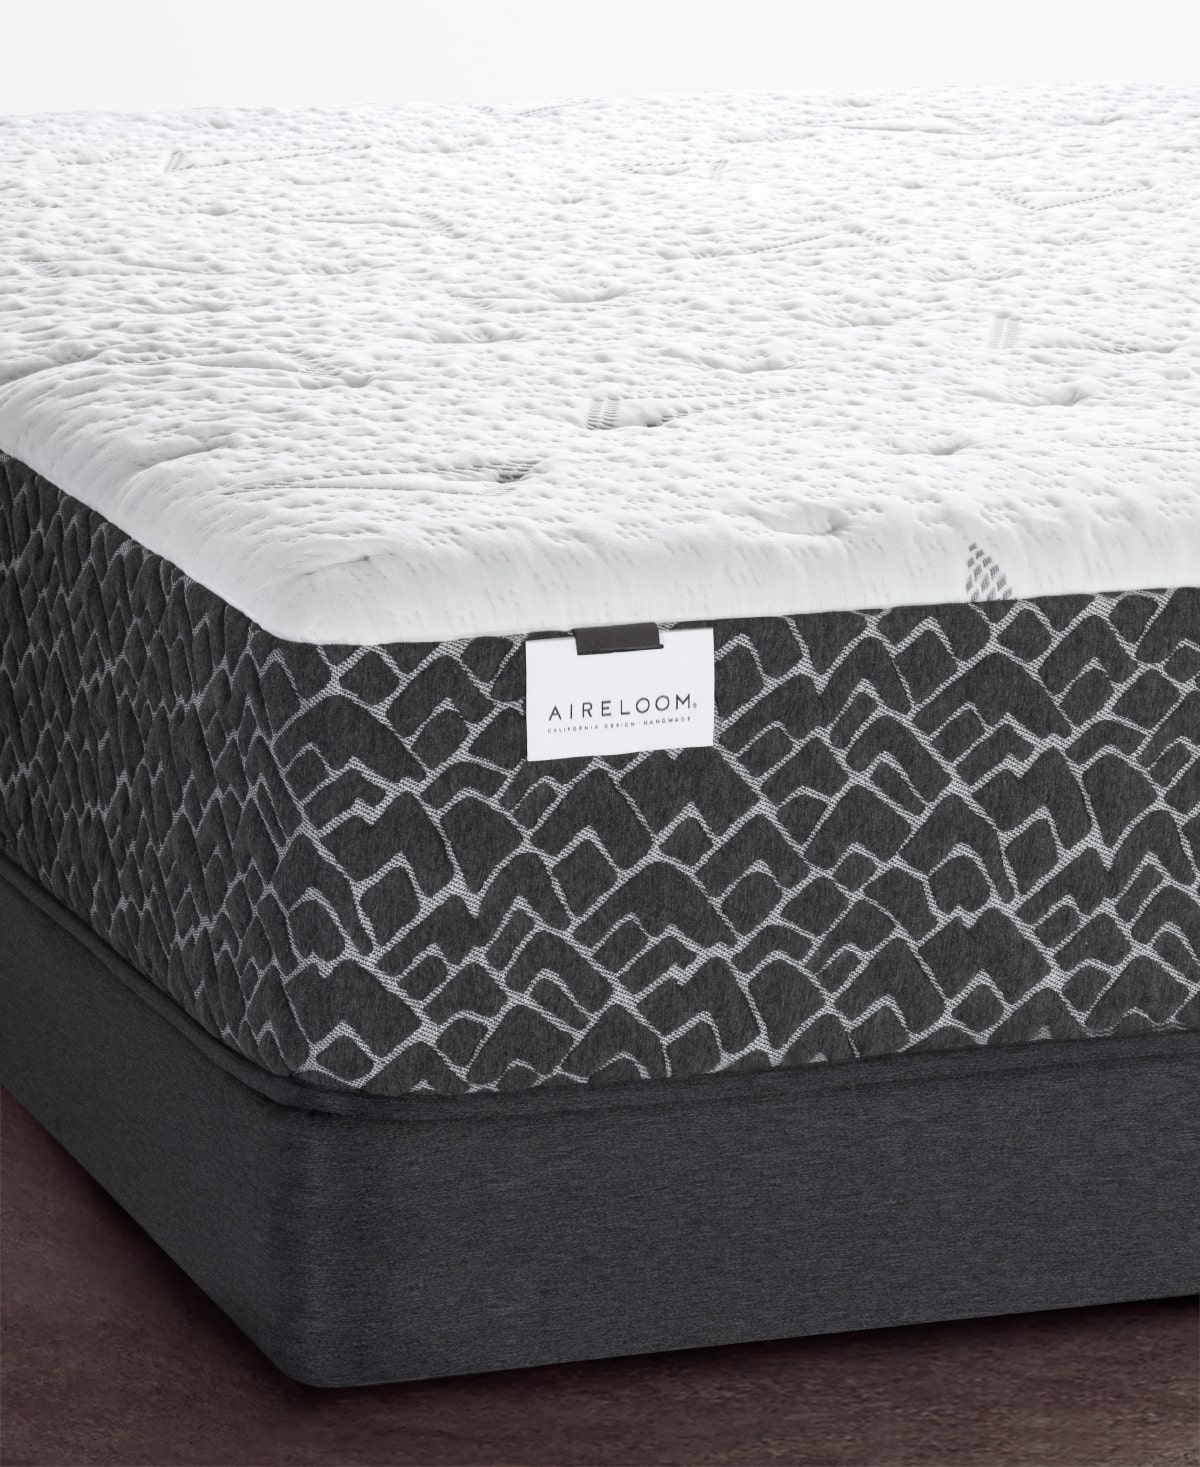 Aireloom Hybrid Firm Luxury Mattress